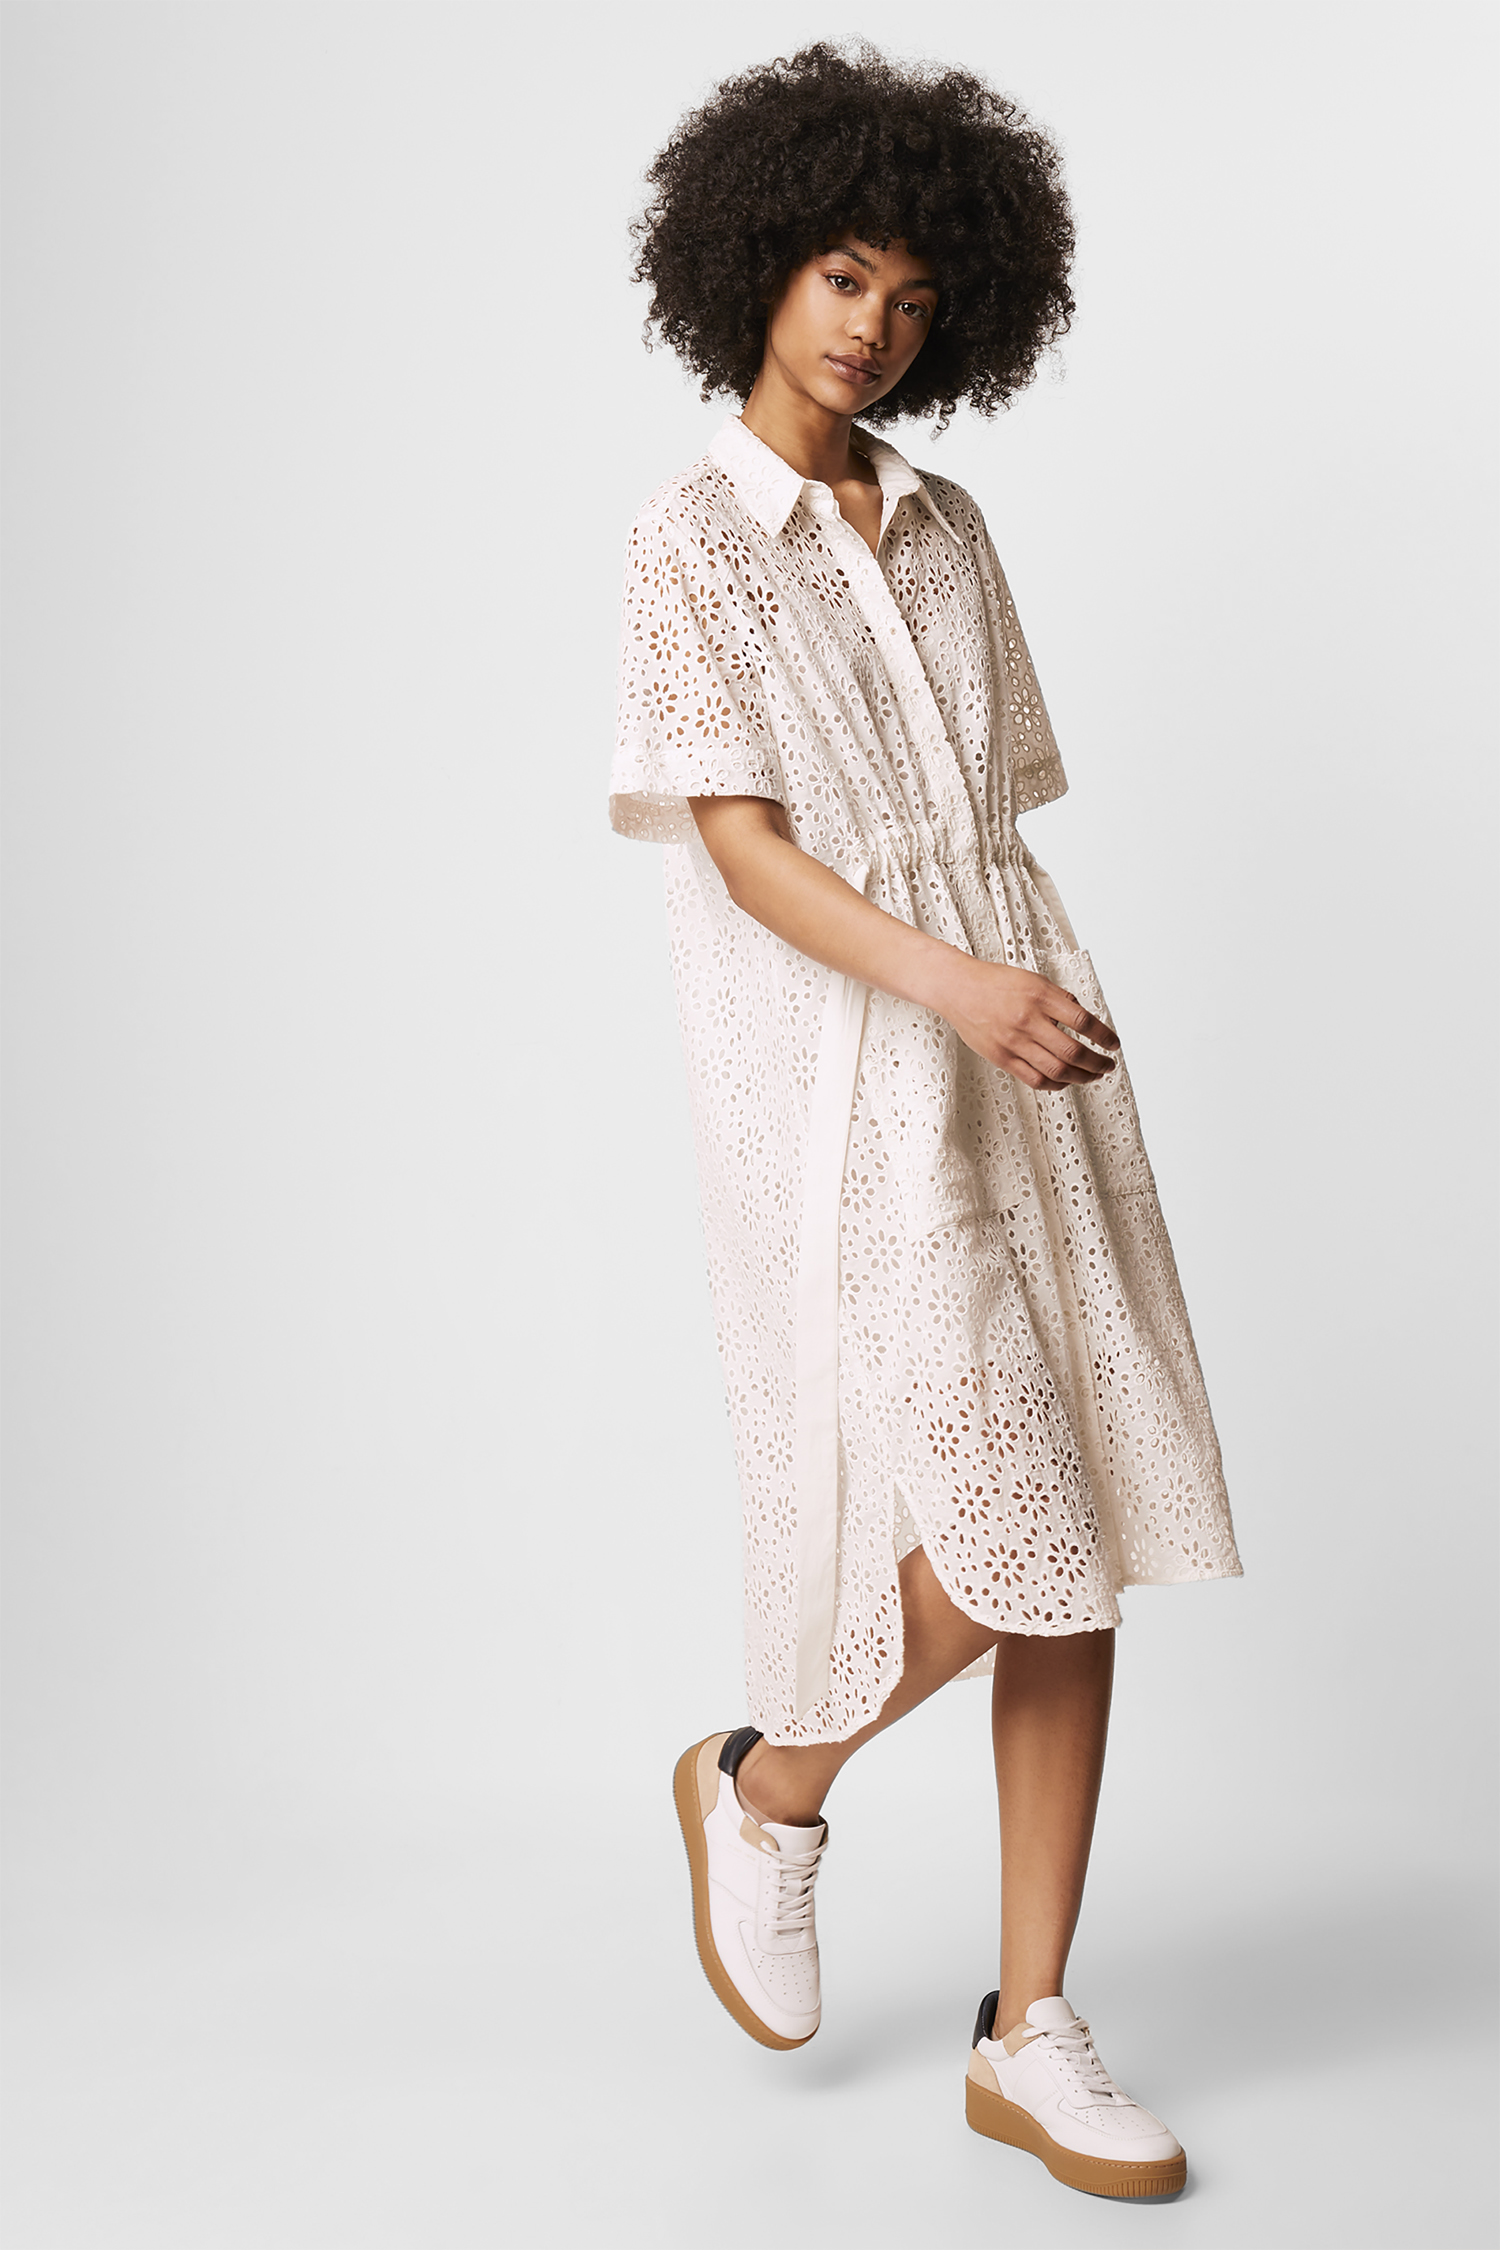 French Connection Blanc AGEE broderie anglaise Popover Shirt Taille S